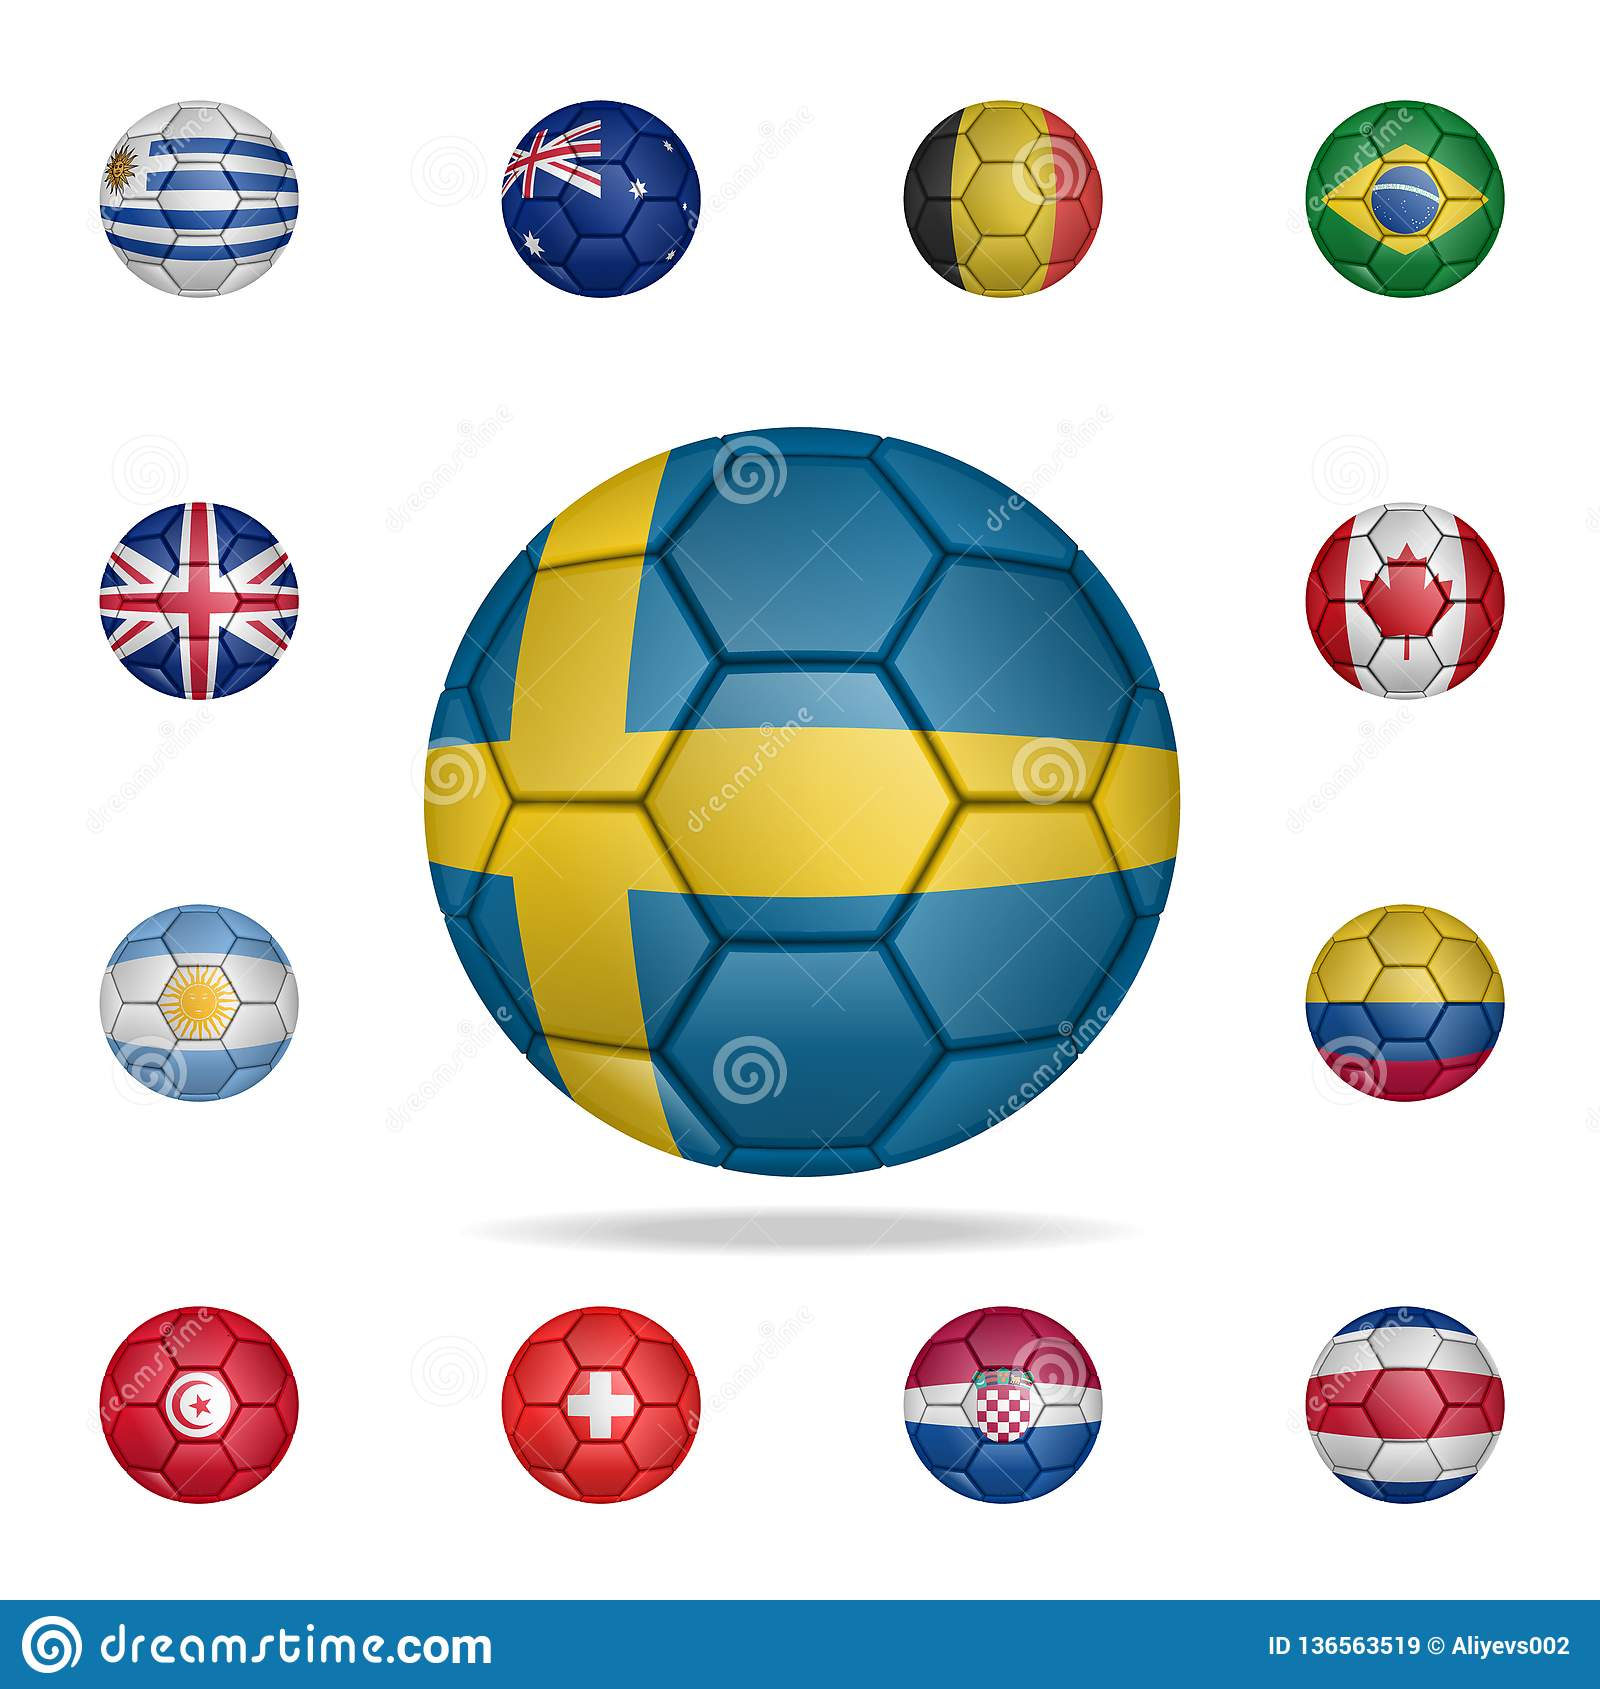 33c3304ce Set of realistic soccer ball painted in the national flag of Sweden for  mobile concept and web apps. Illustration of national soccer balls can be  used for ...